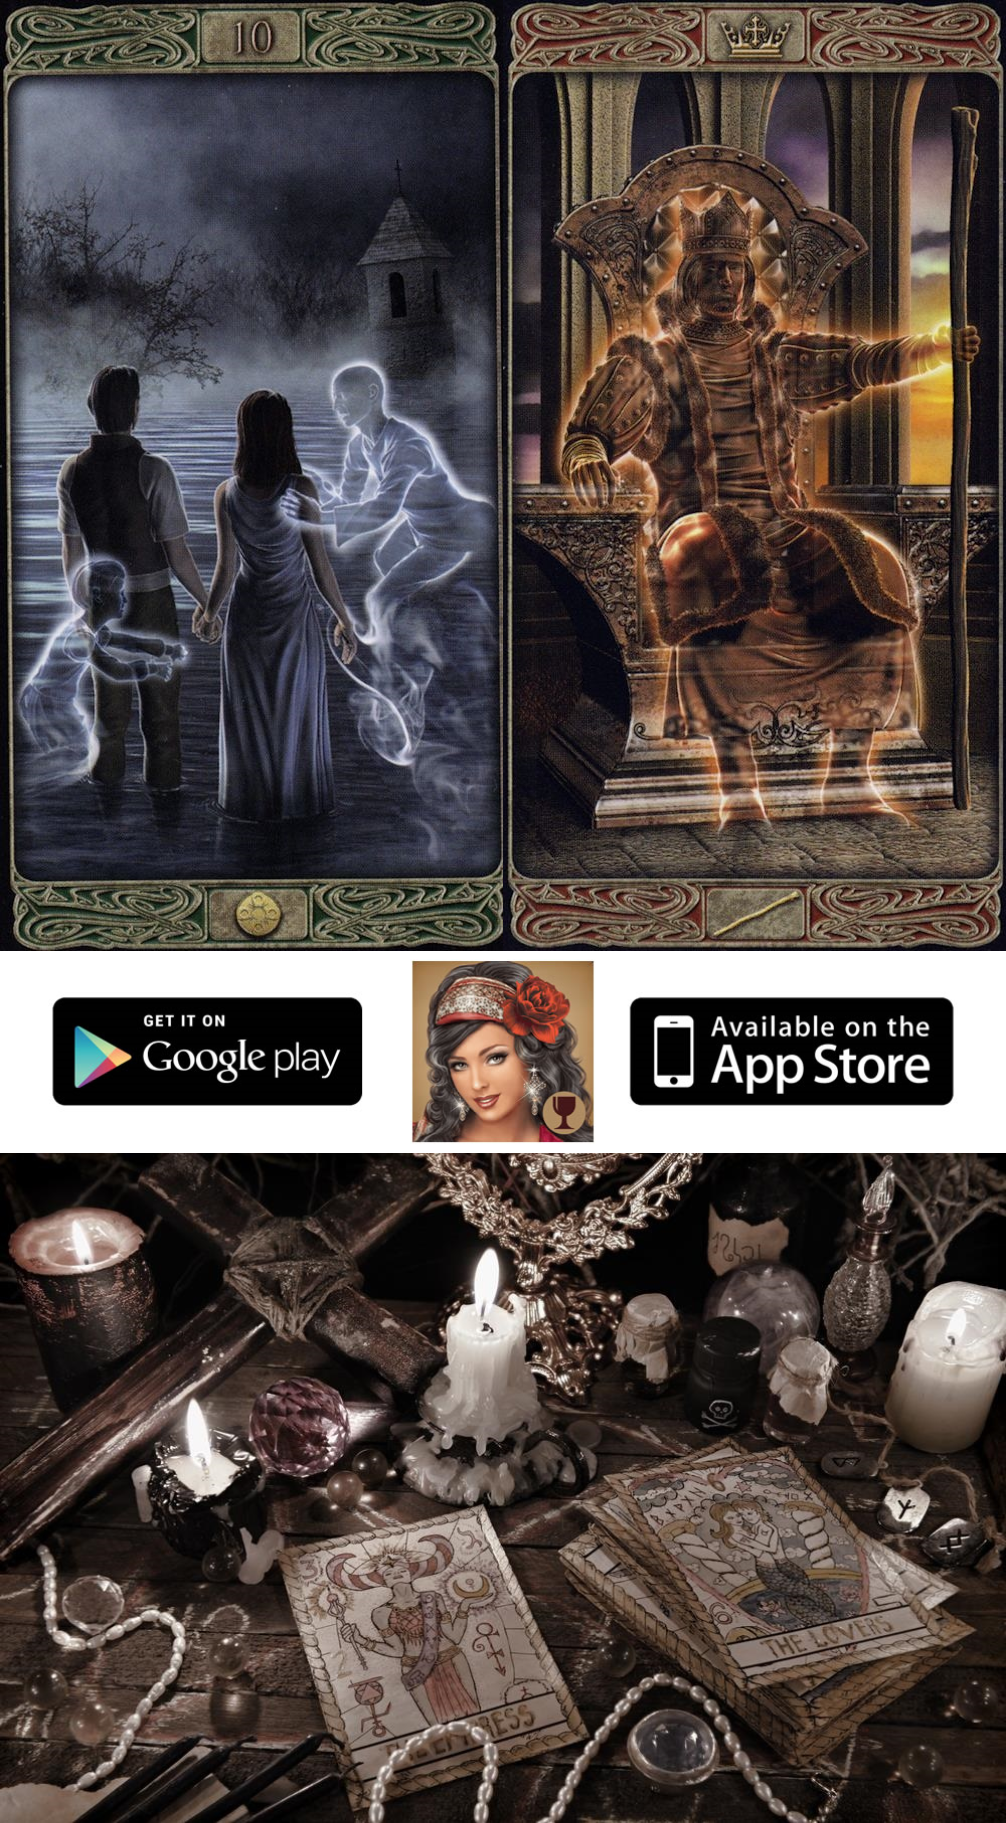 get the free application on your phone or tablet and enjoy tarot get the free application on your phone or tablet and enjoy tarot for yourself tarot definition and freetarotreadings vintage tarot cards and one card solutioingenieria Gallery